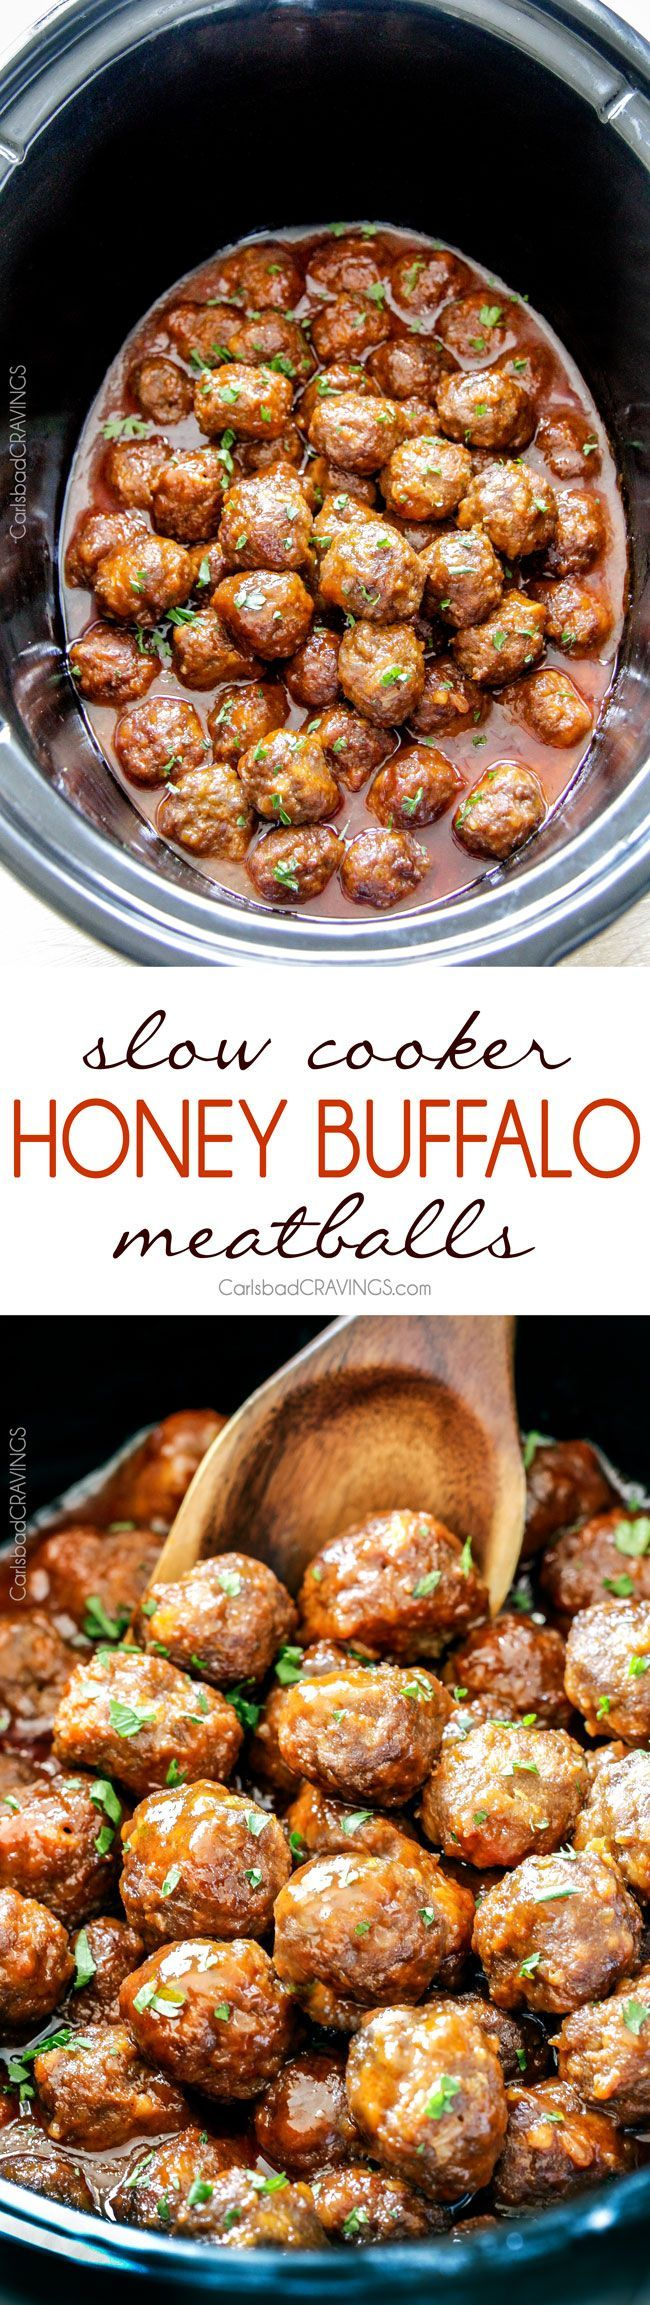 Tender juicy slow cooker Honey Buffalo Meatballs simmered in the most tantalizing sweet heat sauce that everyone goes crazy for! Perfect appetizer or delicious, easy meal with rice!: